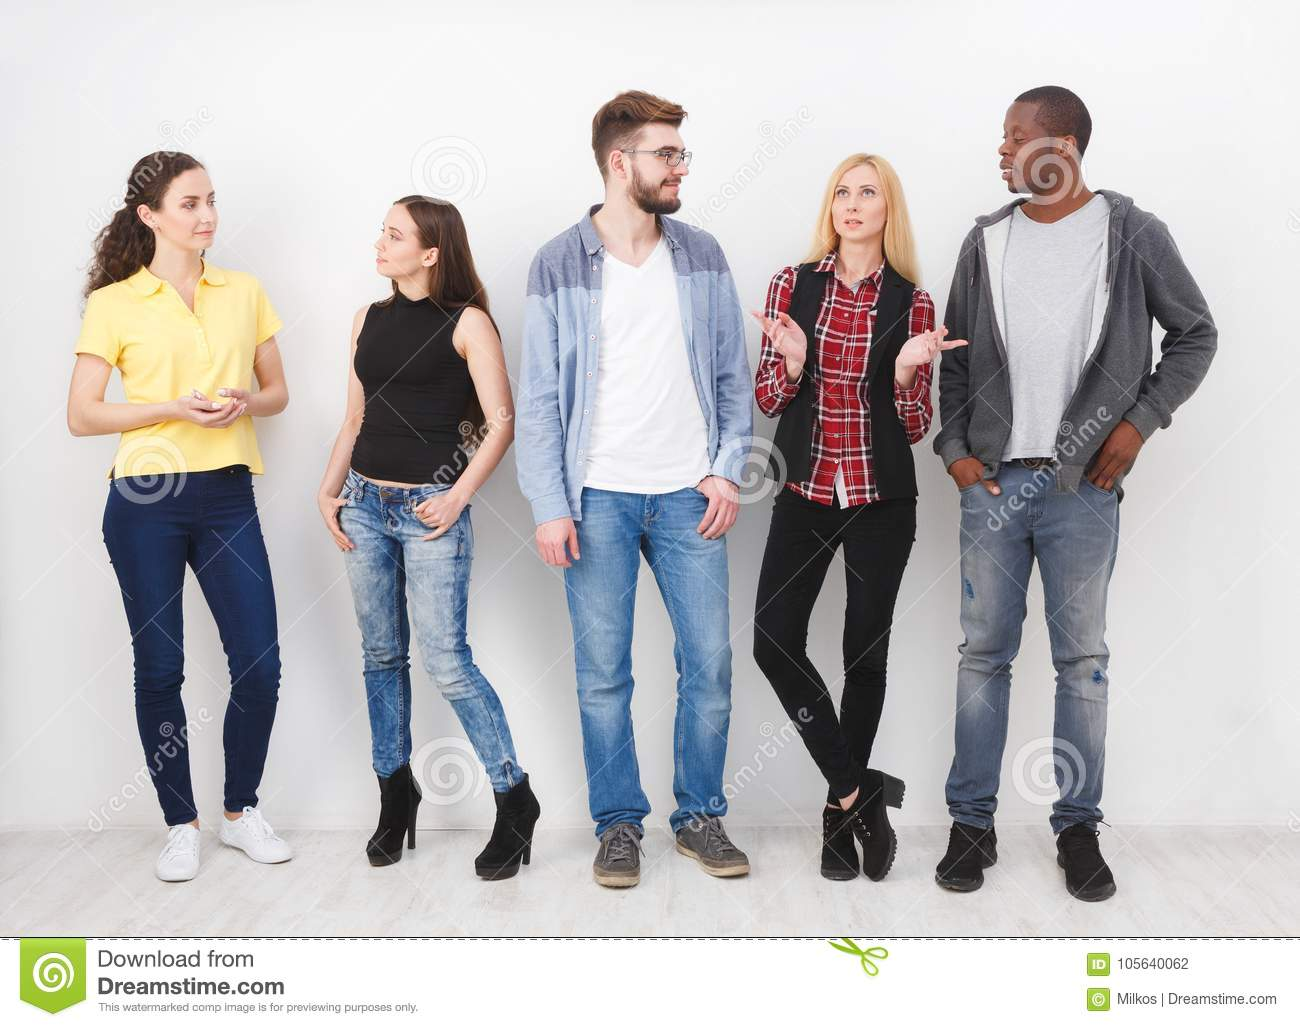 Group of young adults standing